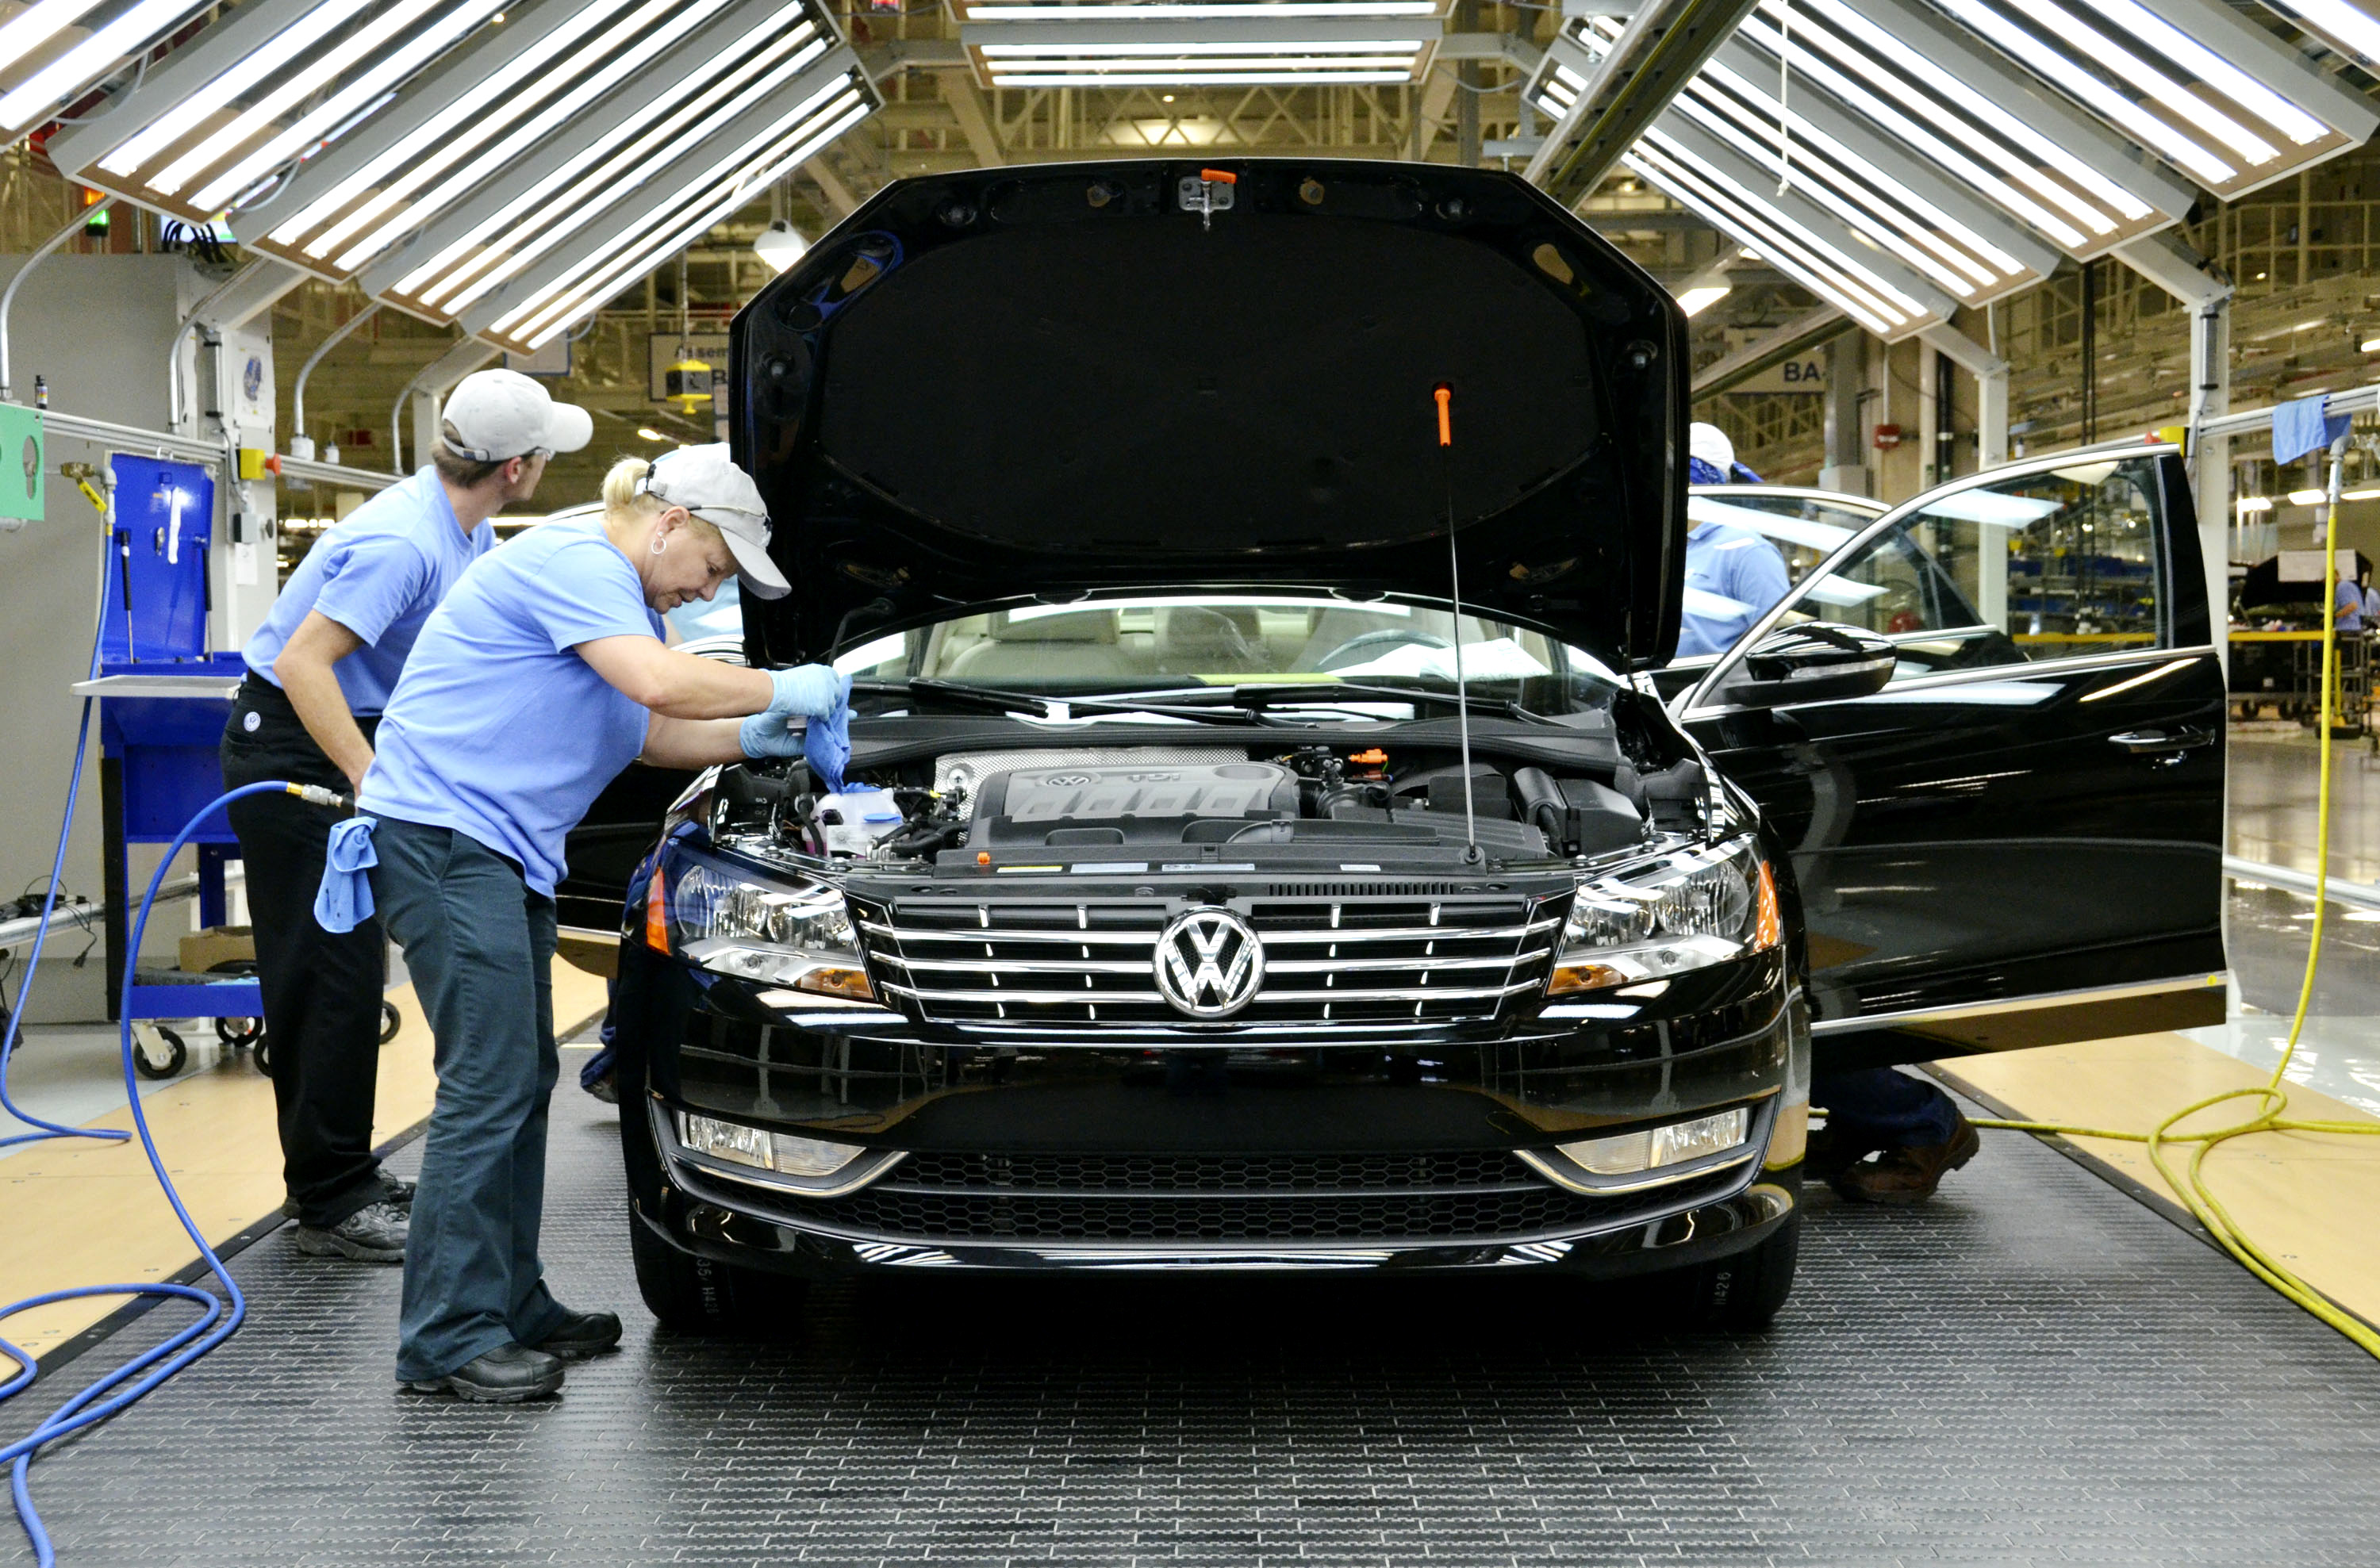 New 2012 VW Passat First Drive And Factory Tour